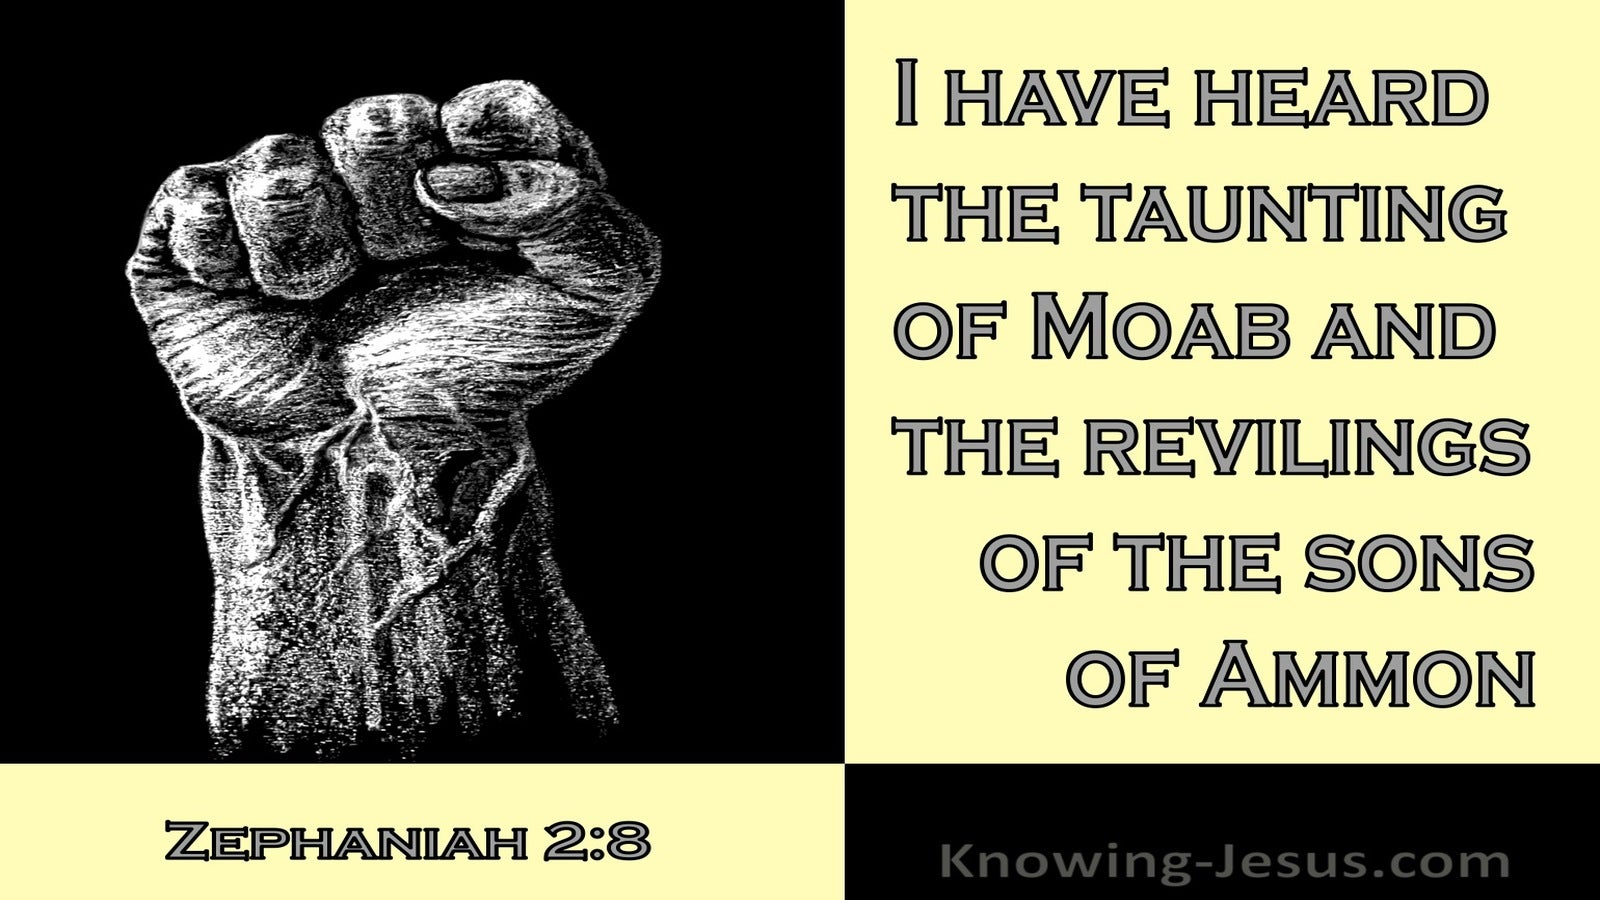 Zephaniah 2:8 The Taunting Of Moab And The Revilings Of The Sons Of Ammon (yellow)